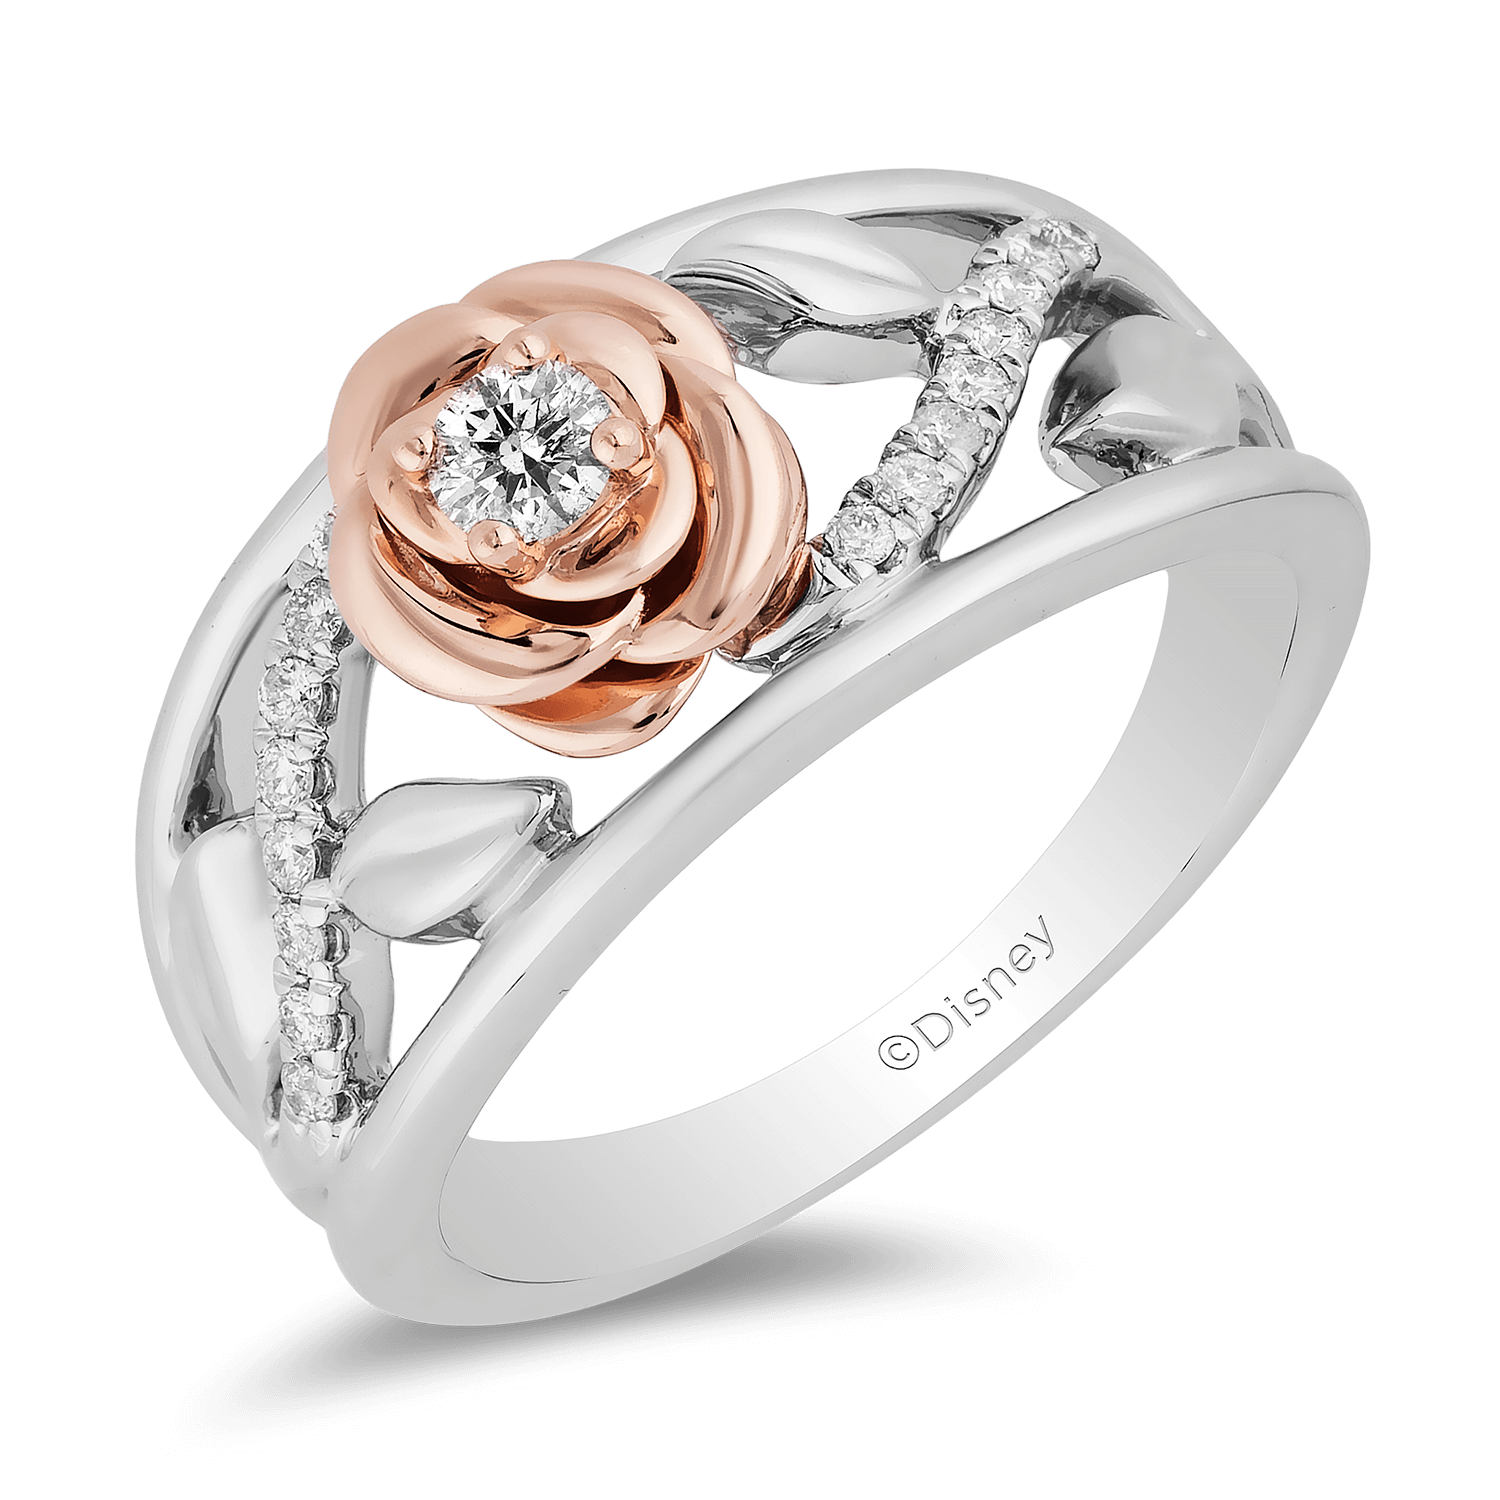 enchanted_disney-belle_rose_ring-10k_rose_gold_and_sterling_silver_1/5CTTW_1